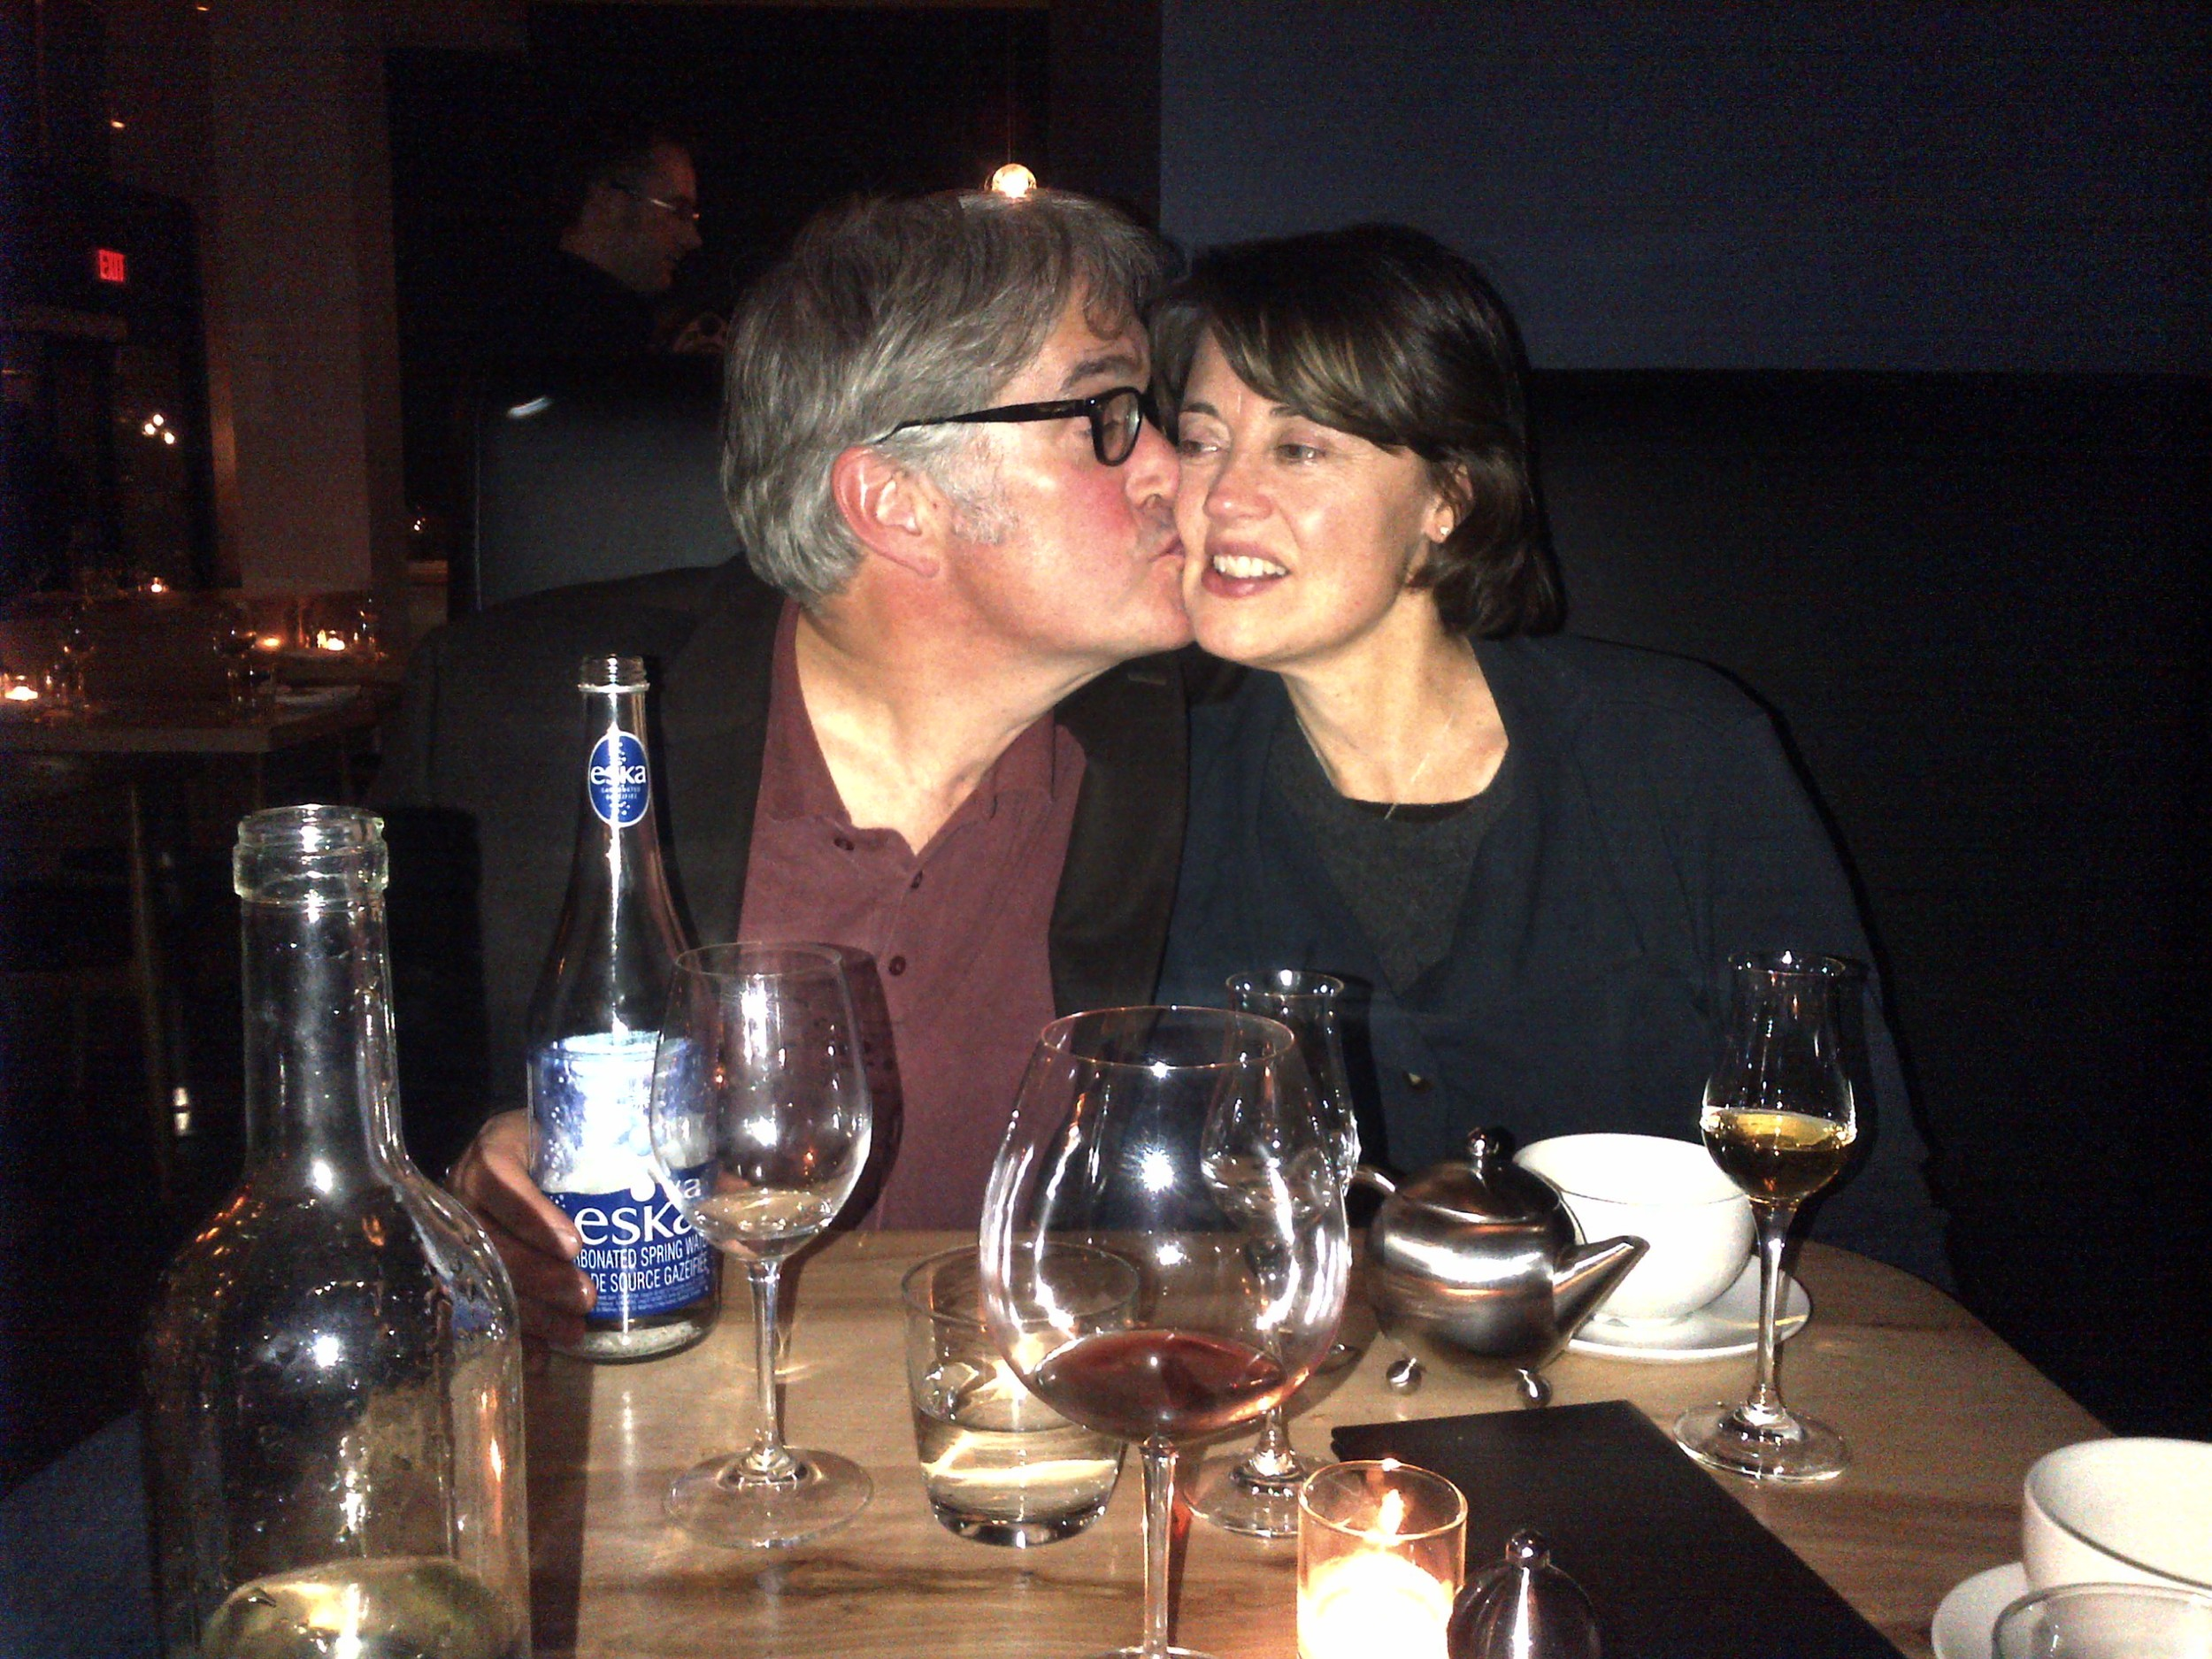 Thomas Bachelder and Mary Delaney: Partners in life and the winery.